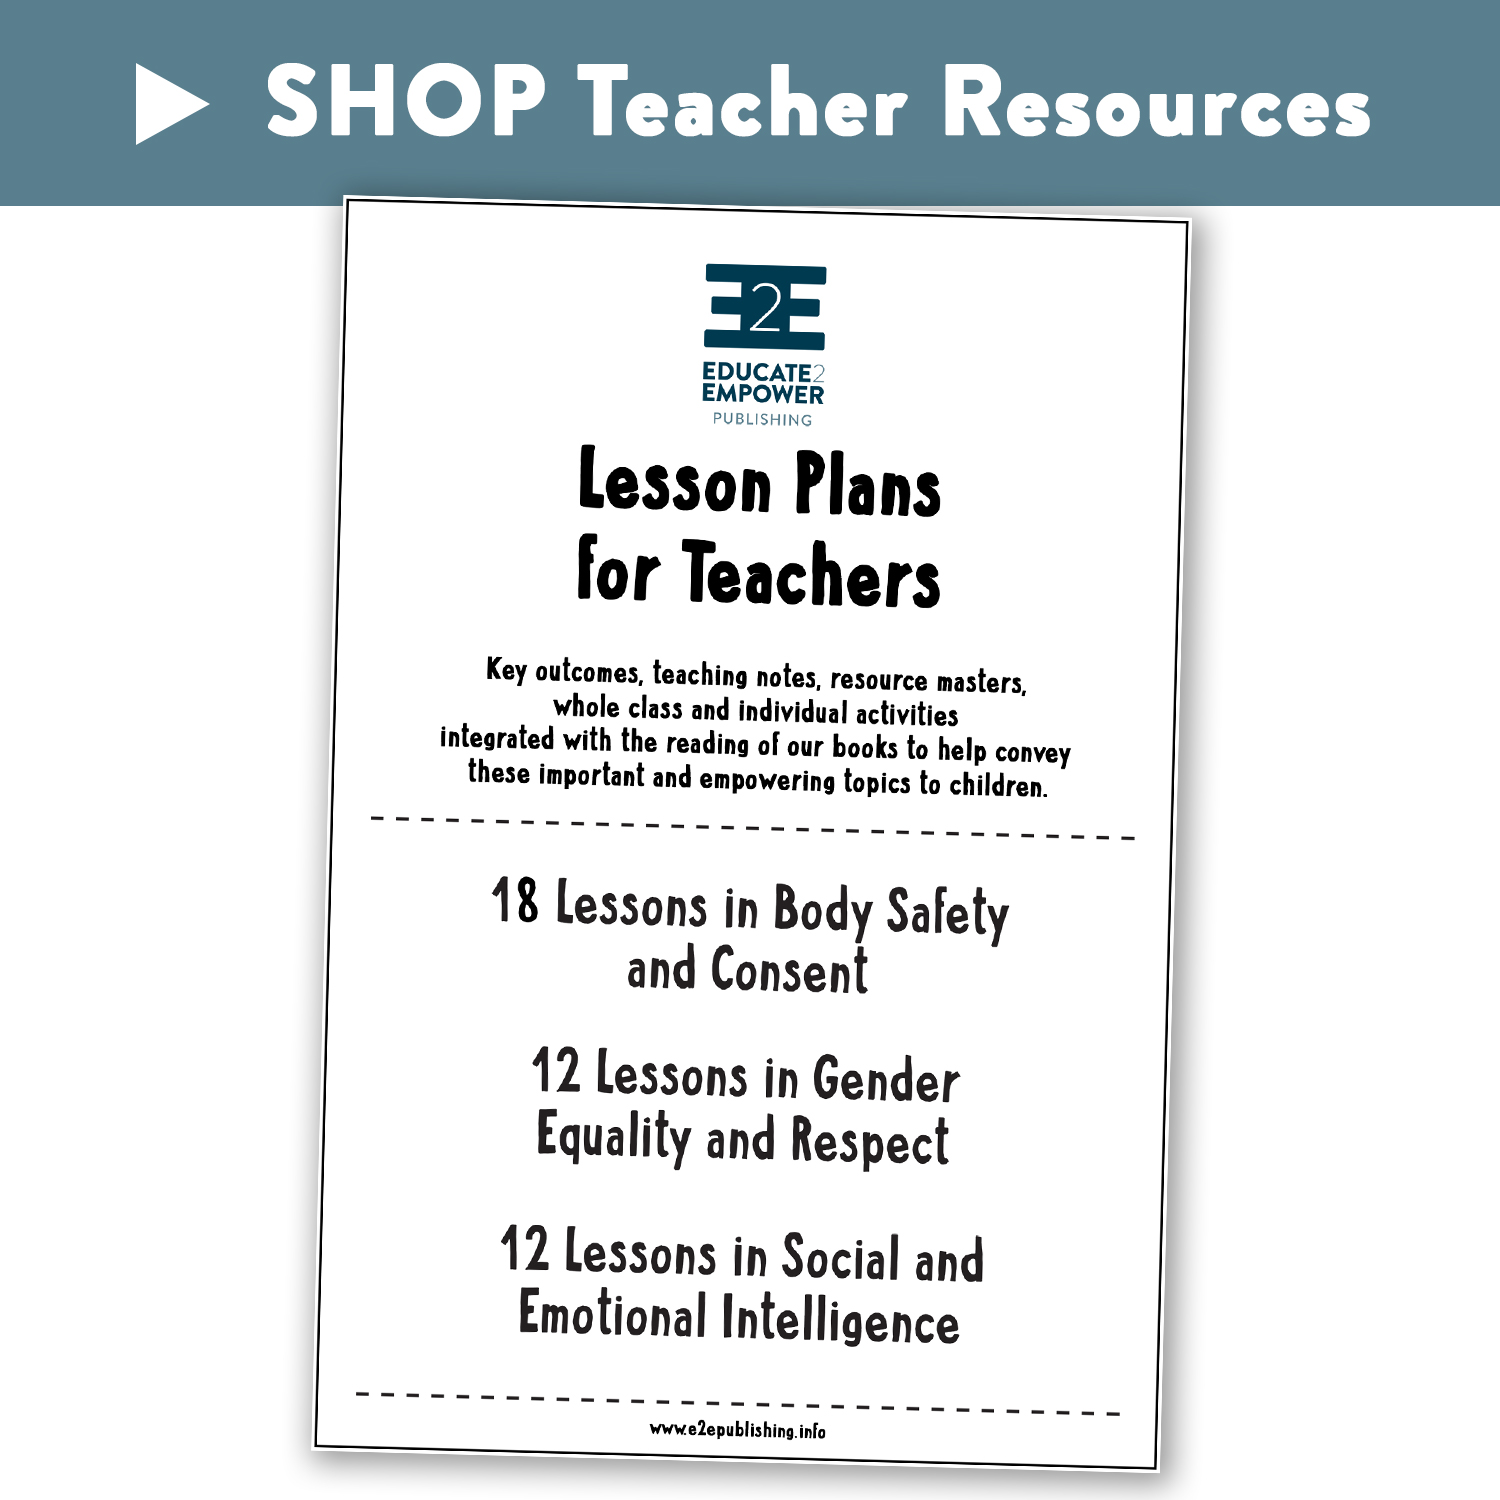 E2E_shop_TeacherResources_3.jpg